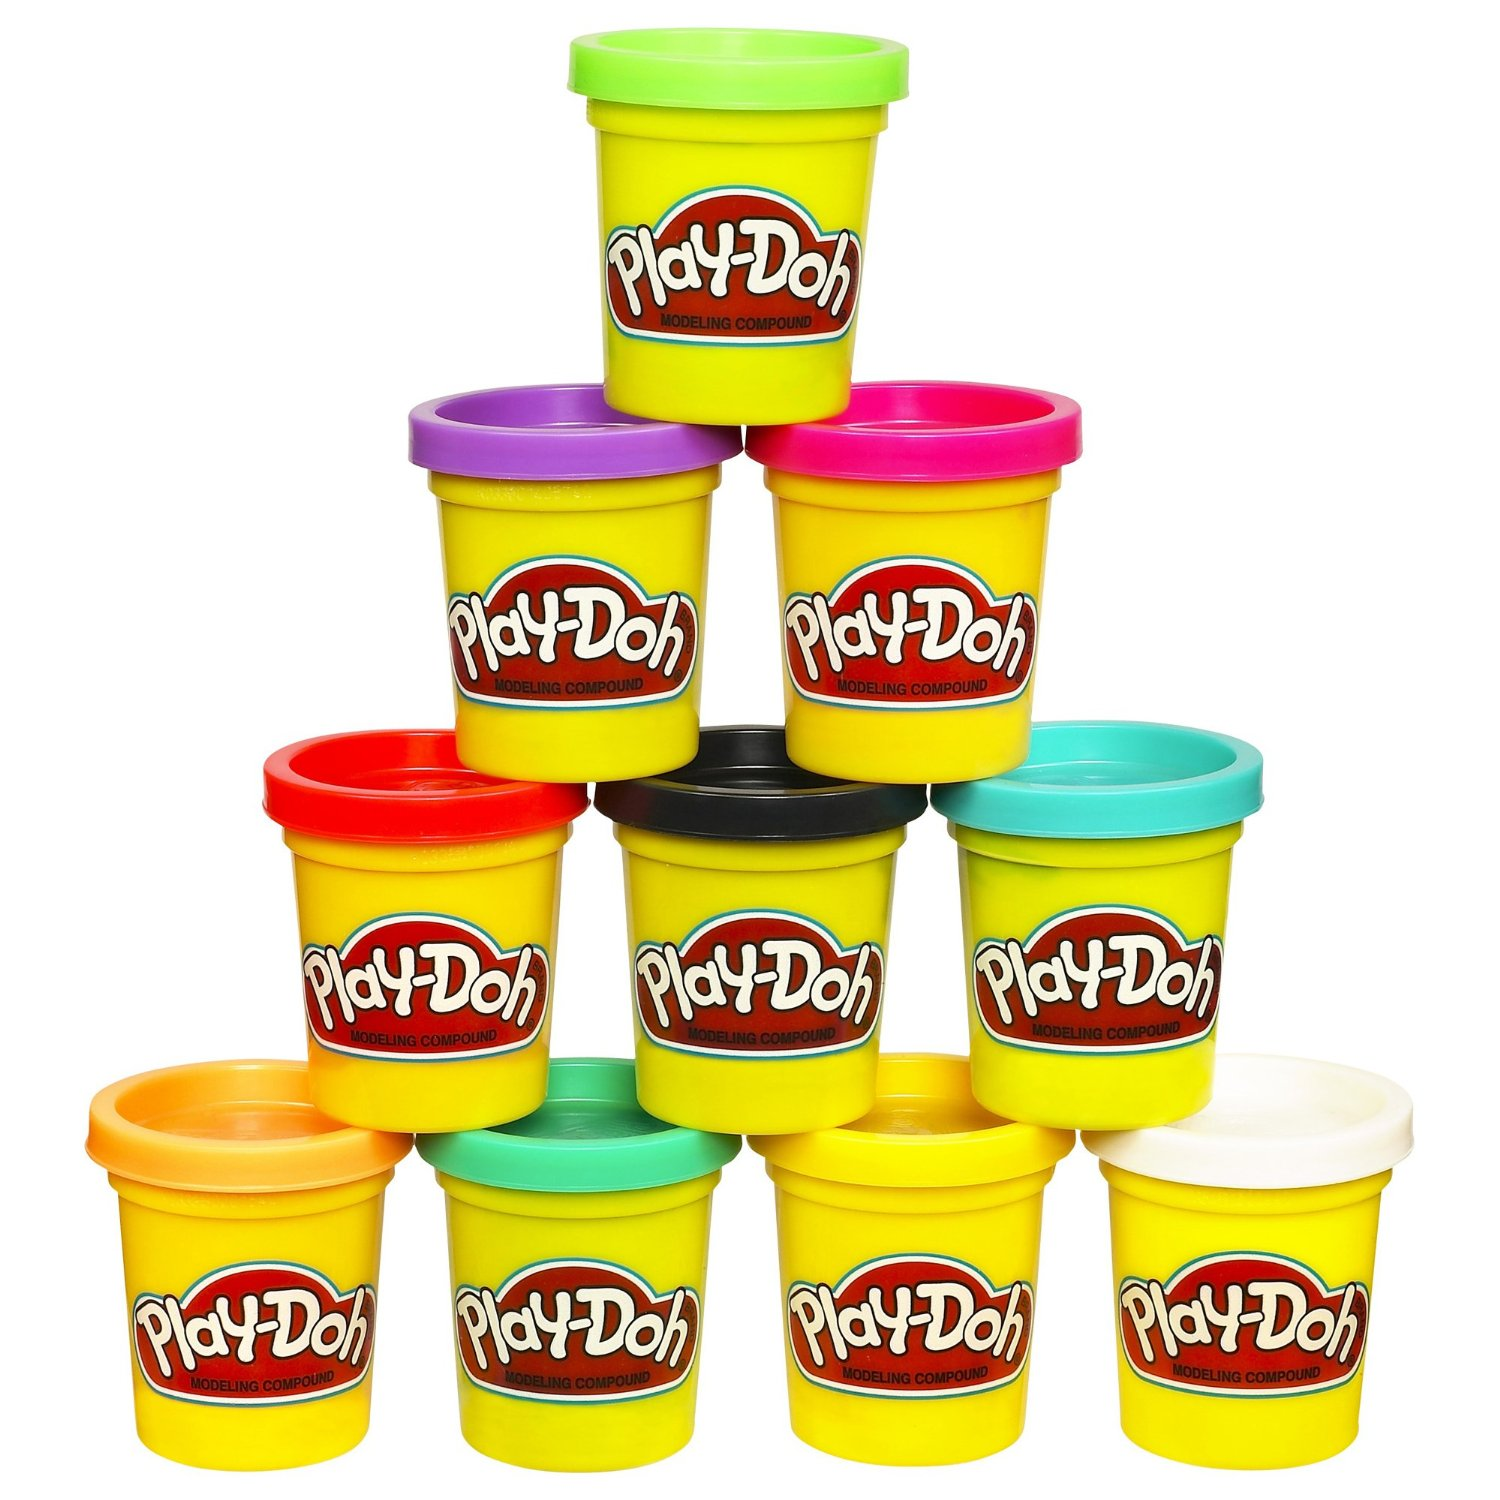 Doh clipart playdough container. Play toys for kids